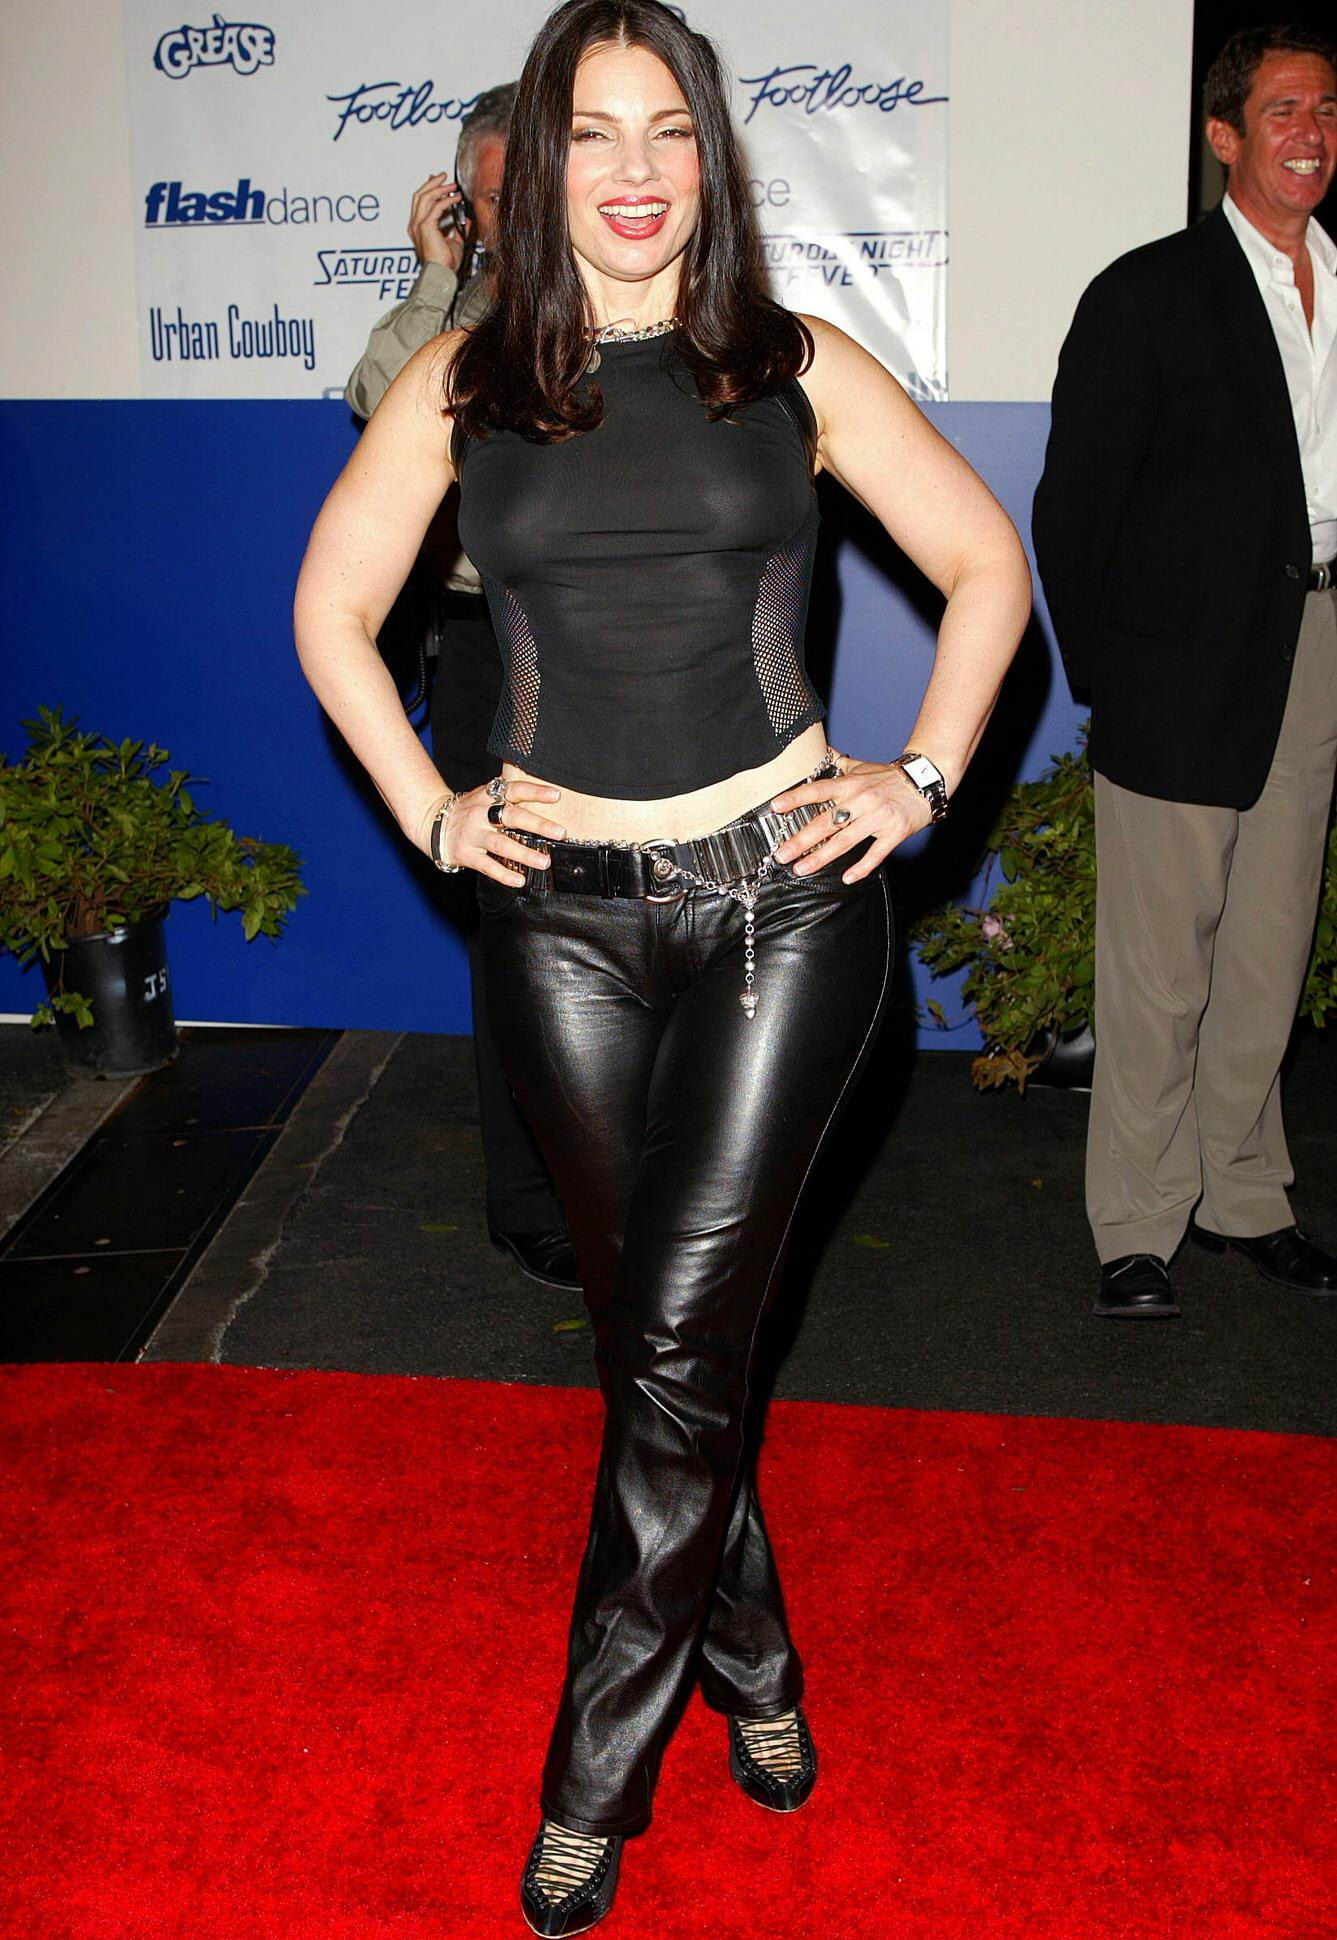 Fran Drescher Nude Naked Pics And Videos Imperiodefamosas